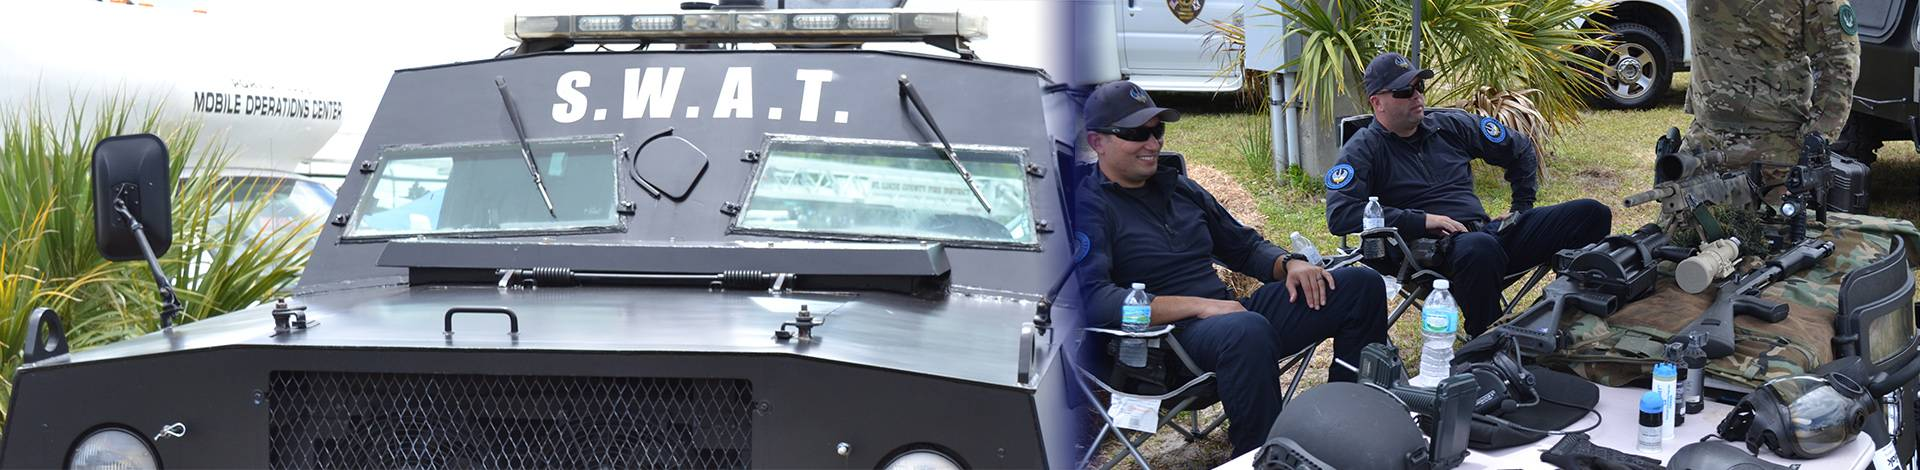 Swat team and weapons